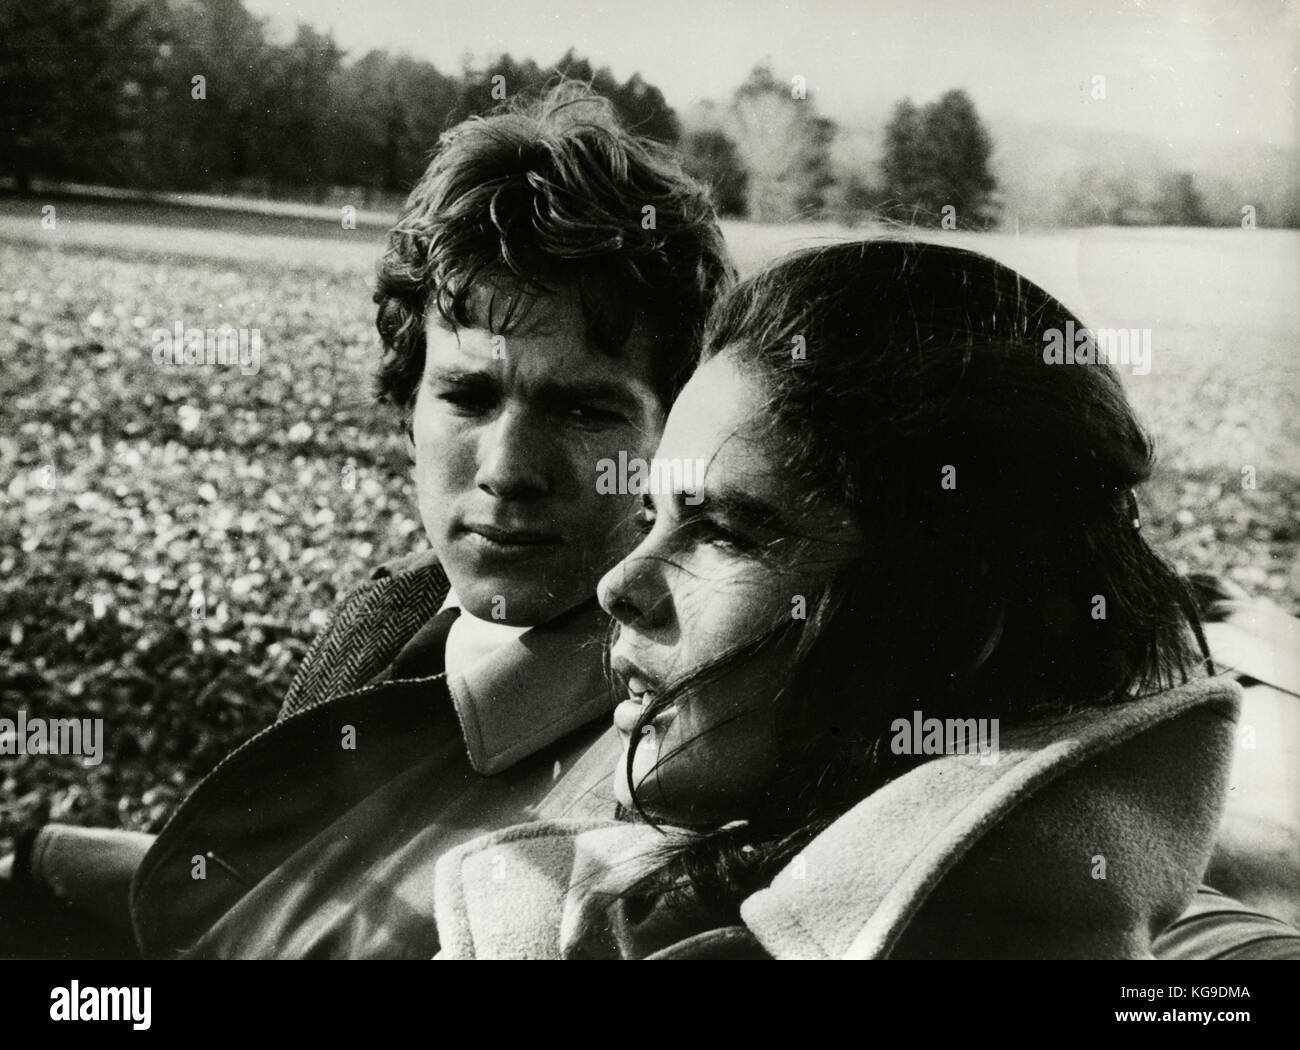 Actors Ryan O' Neal and Ali MacGrow in the movie Love Story, 1970 - Stock Image